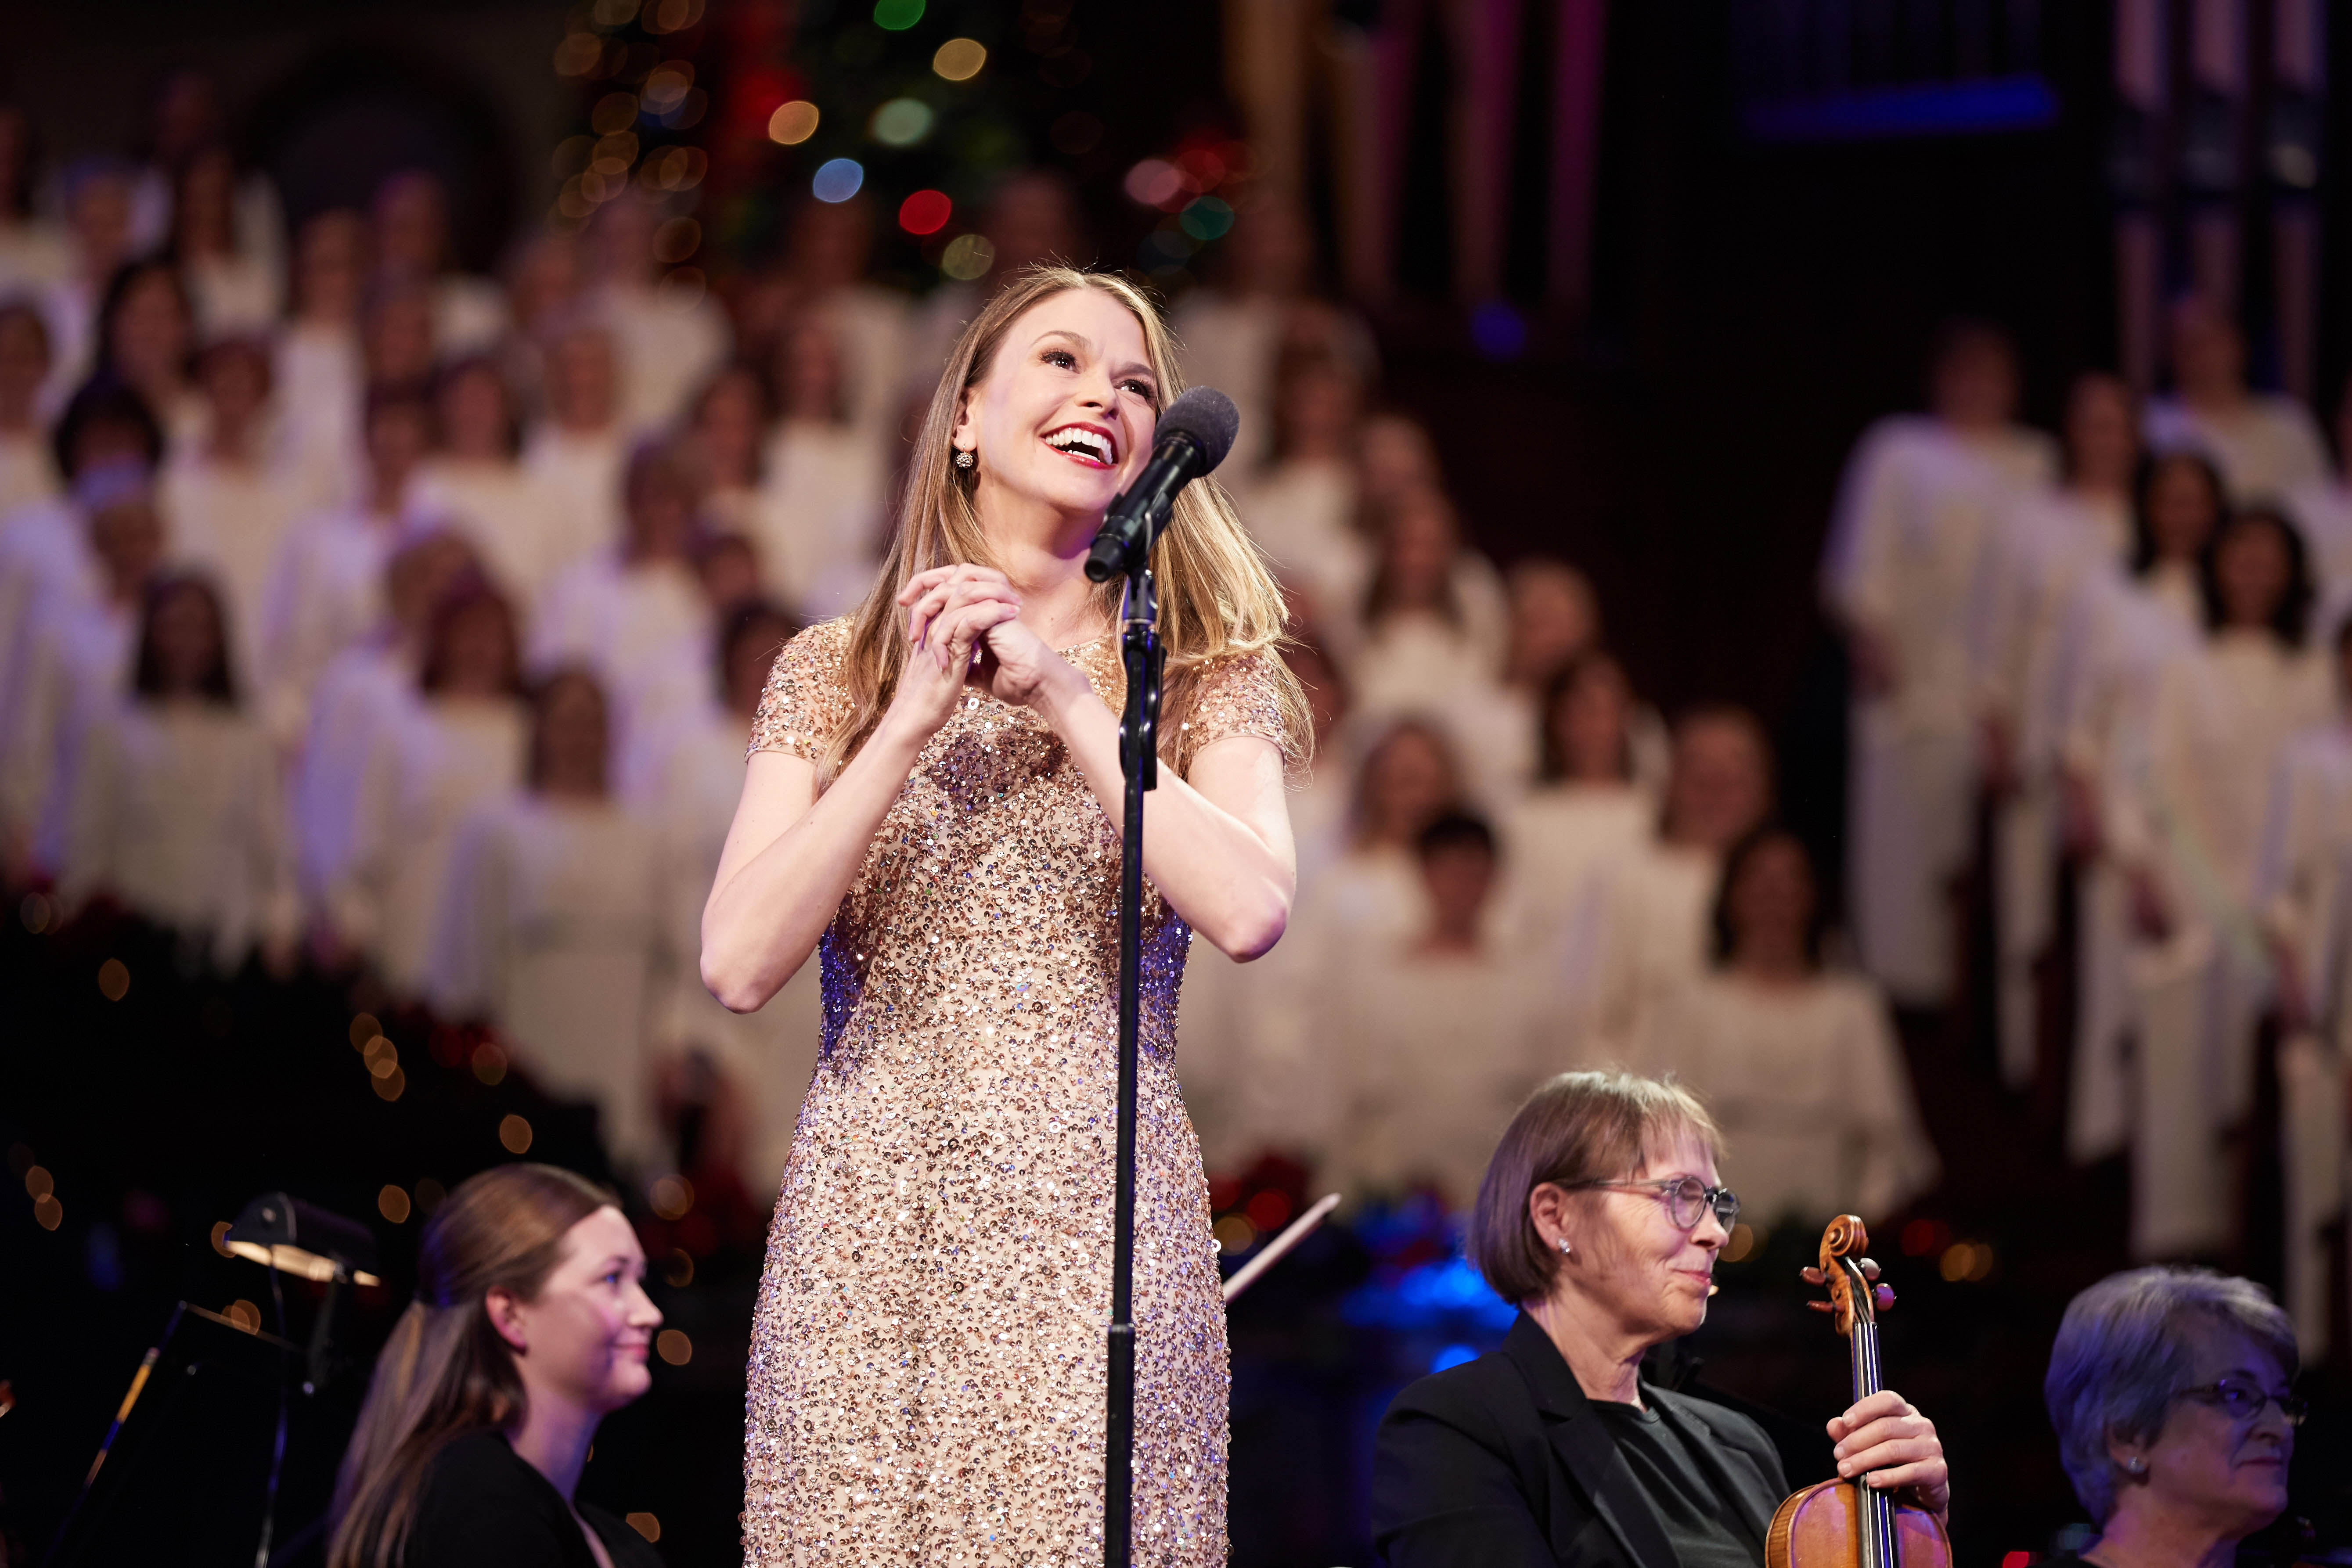 Mormon Tabernacle Christmas Concert 2019 Christmas With the Mormon Tabernacle Choir, Featuring Sutton